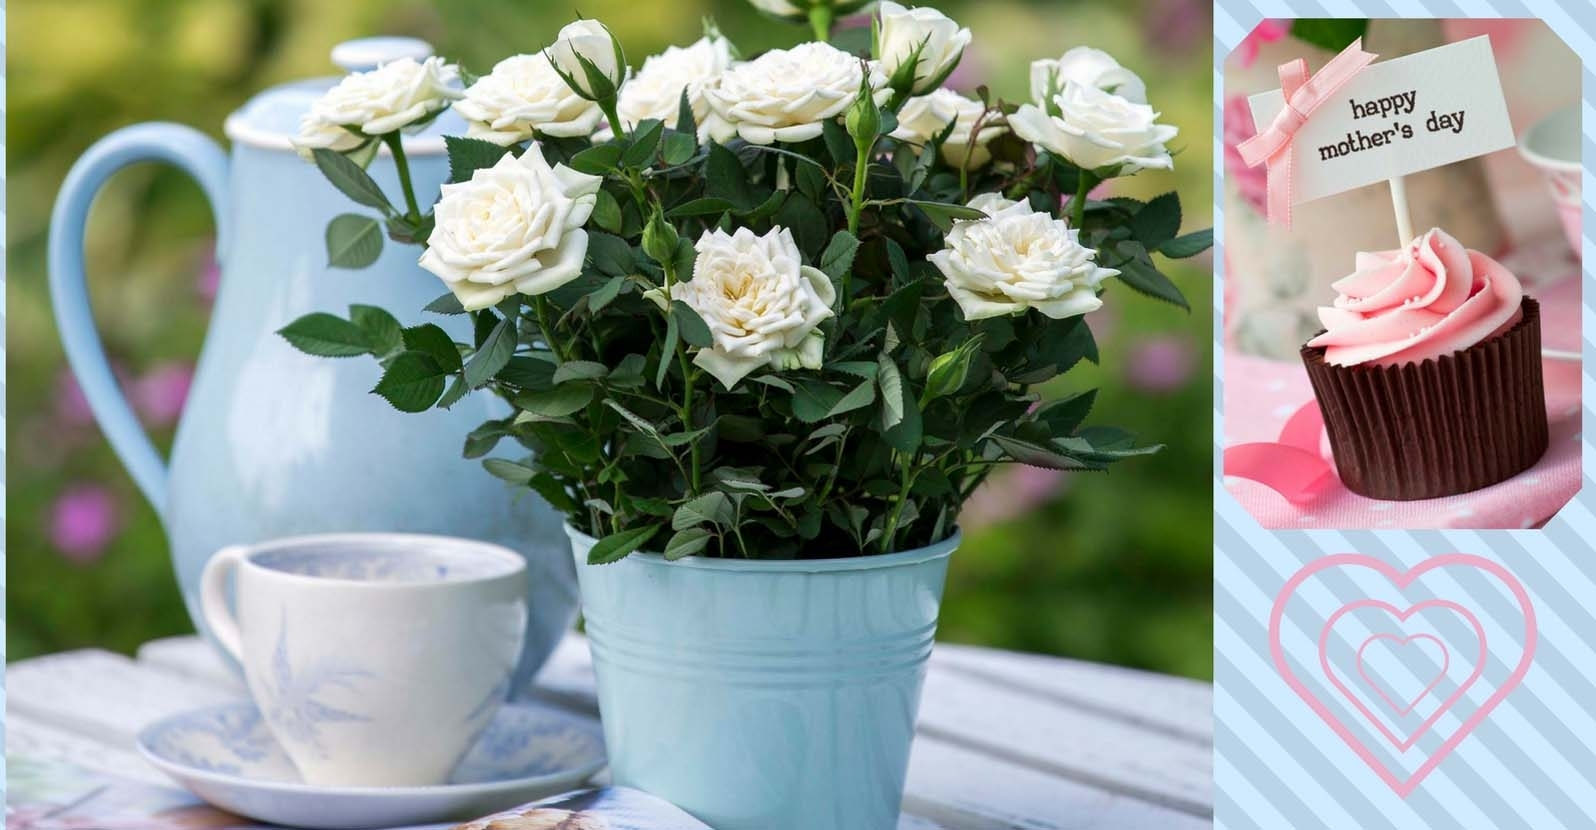 Get to Know Miniature Roses for Mother's Day